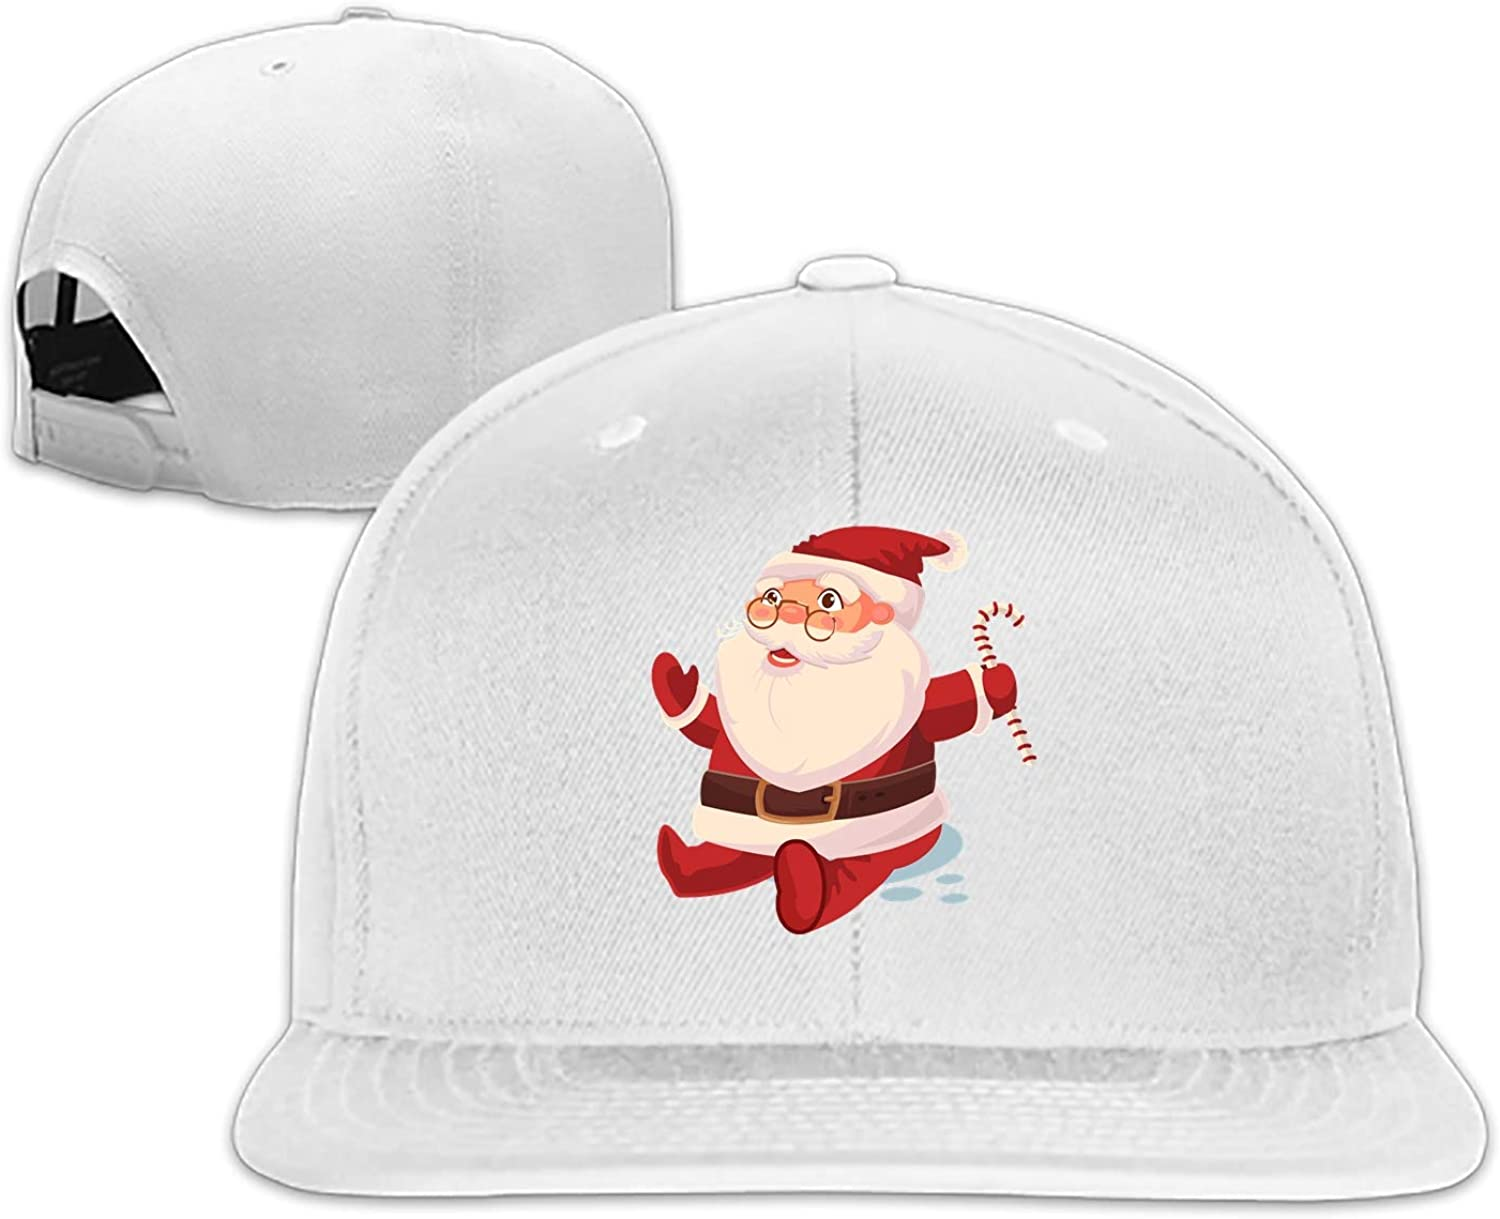 Merry Christmas Mens Structured Twill Cap Adjustable Peaked Sandwich Hat